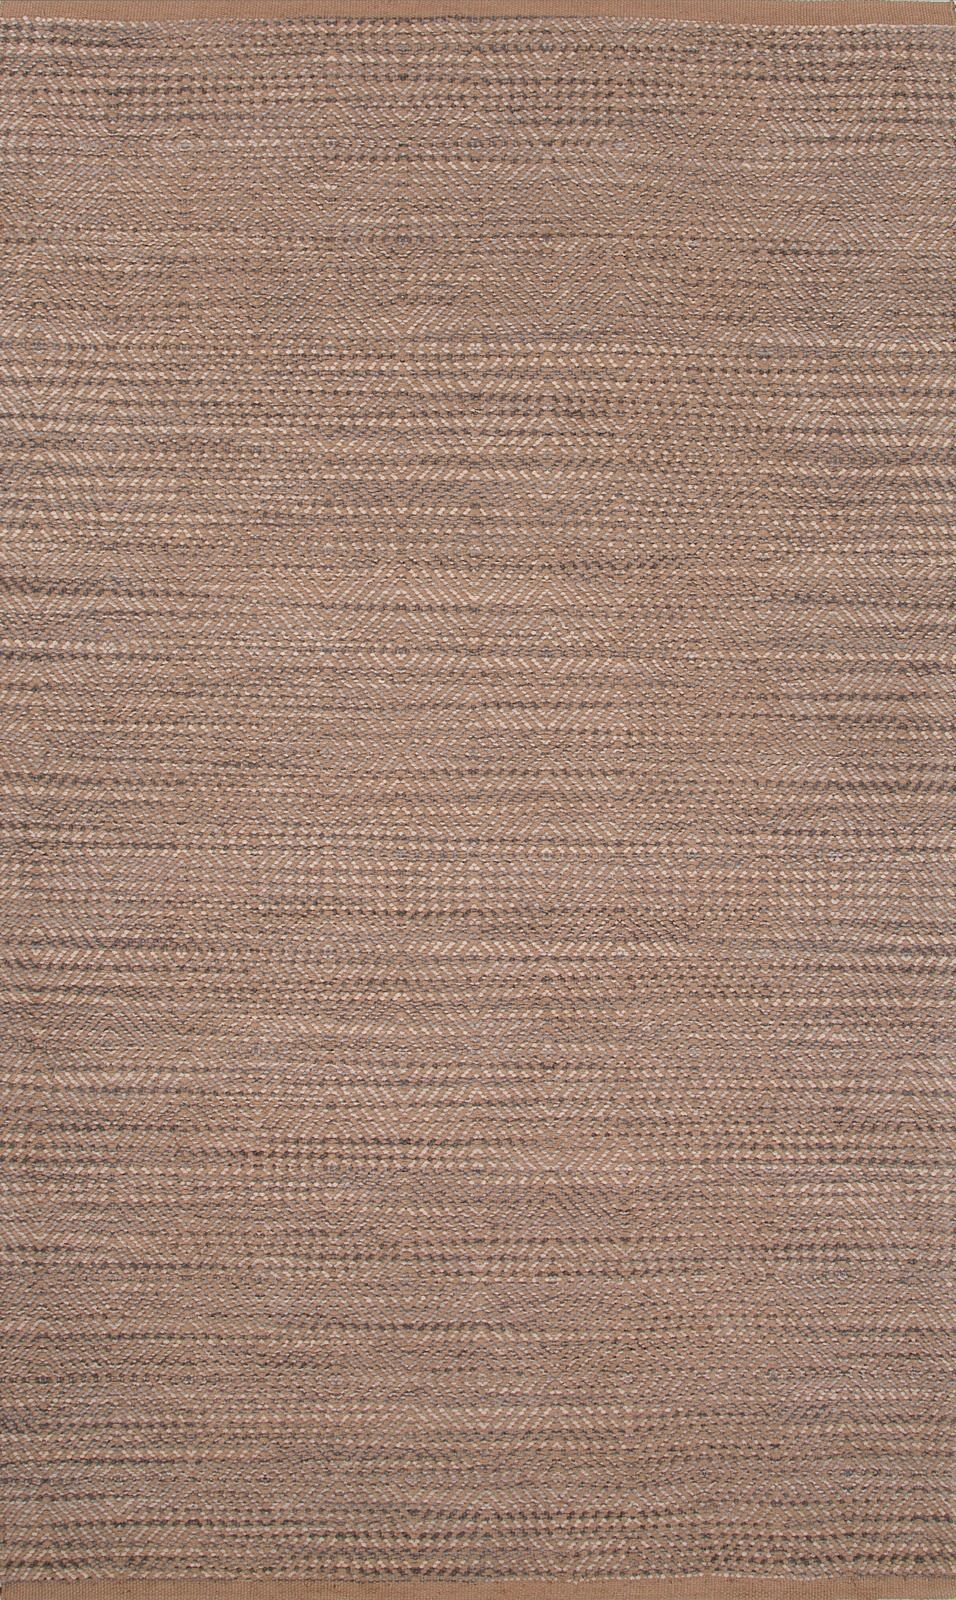 jaipur himalaya natural fiber area rug collection